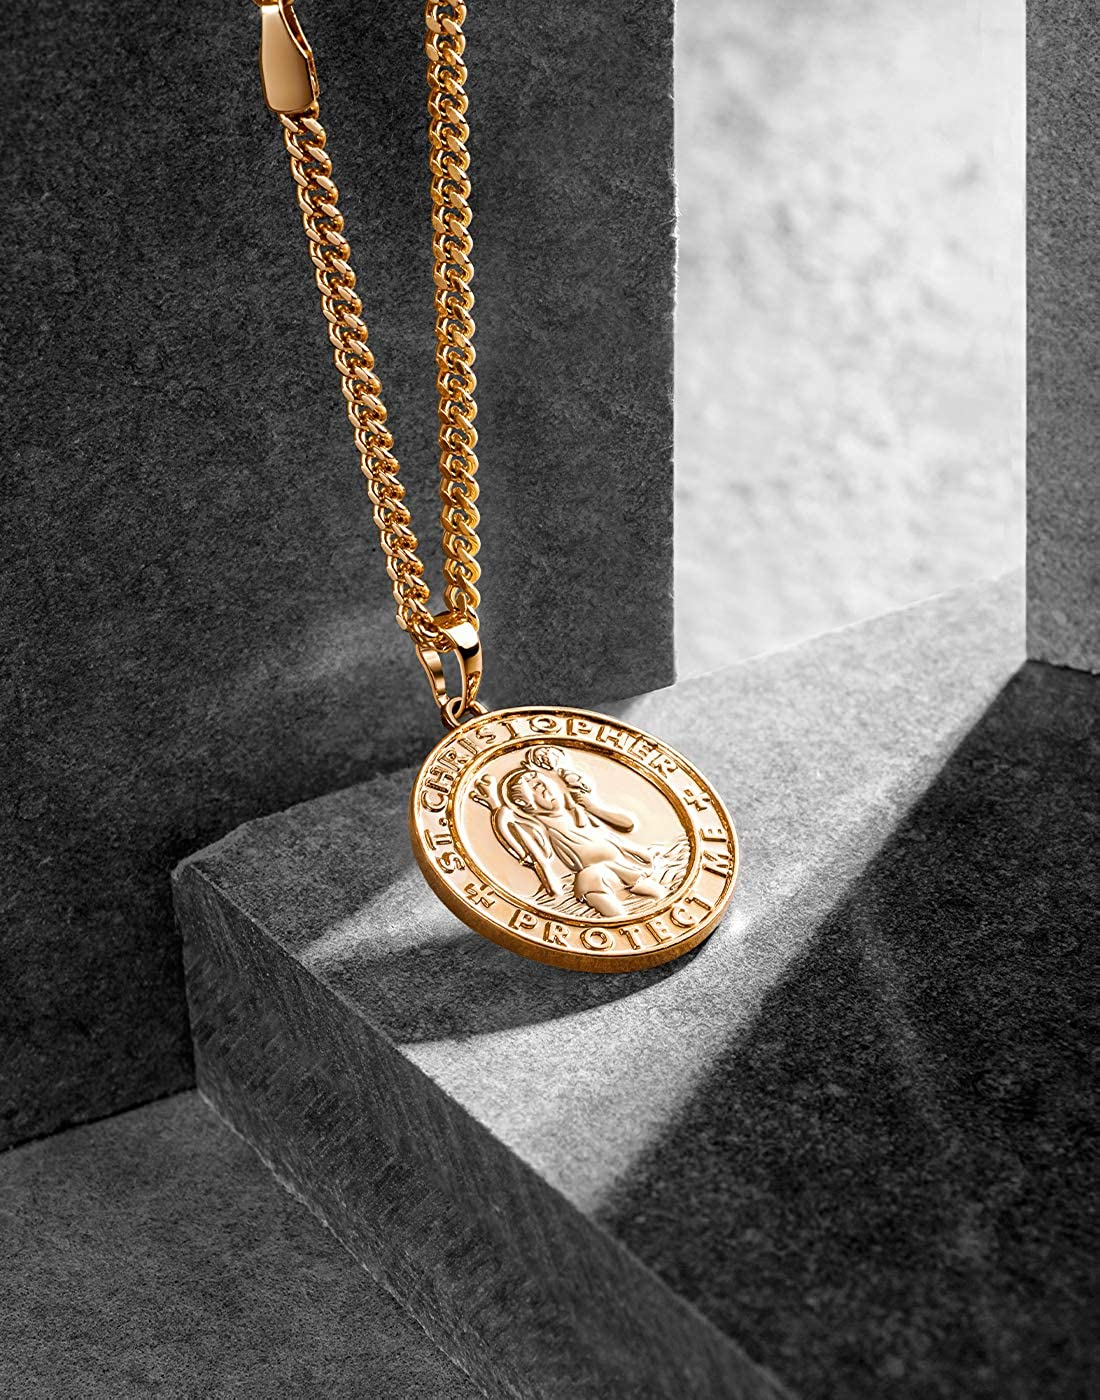 18k/Gold/Plated/Coin/Necklace/Vintage/Textured/St/Christopher/Medal/Patron/Saint/of/Travelers/Catholic/Protection/Pendant/Necklace,/Gold/Tone/Devotional/&nbs